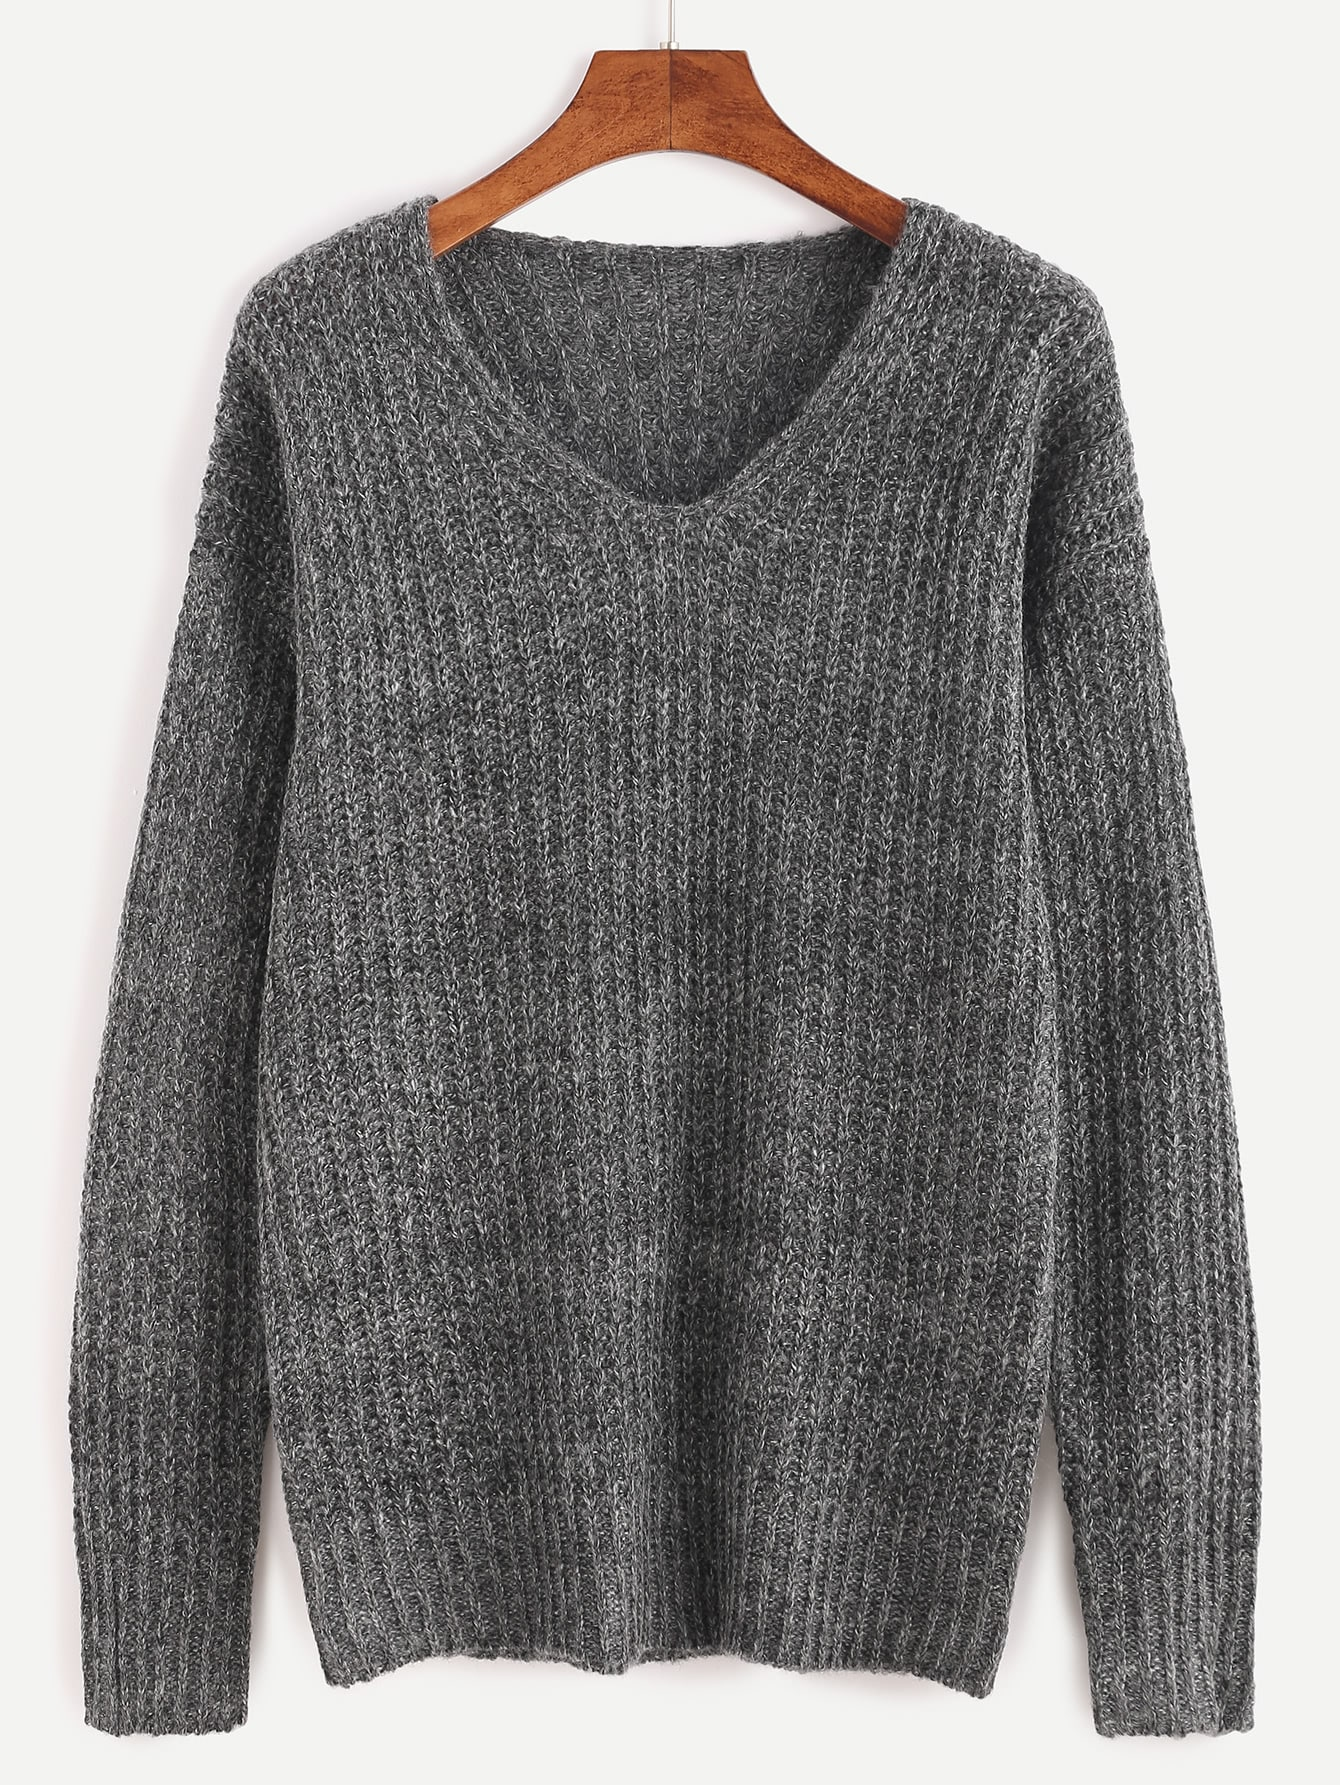 Grey Ribbed Knit Drop Shoulder SweaterGrey Ribbed Knit Drop Shoulder Sweater<br><br>color: Grey<br>size: one-size